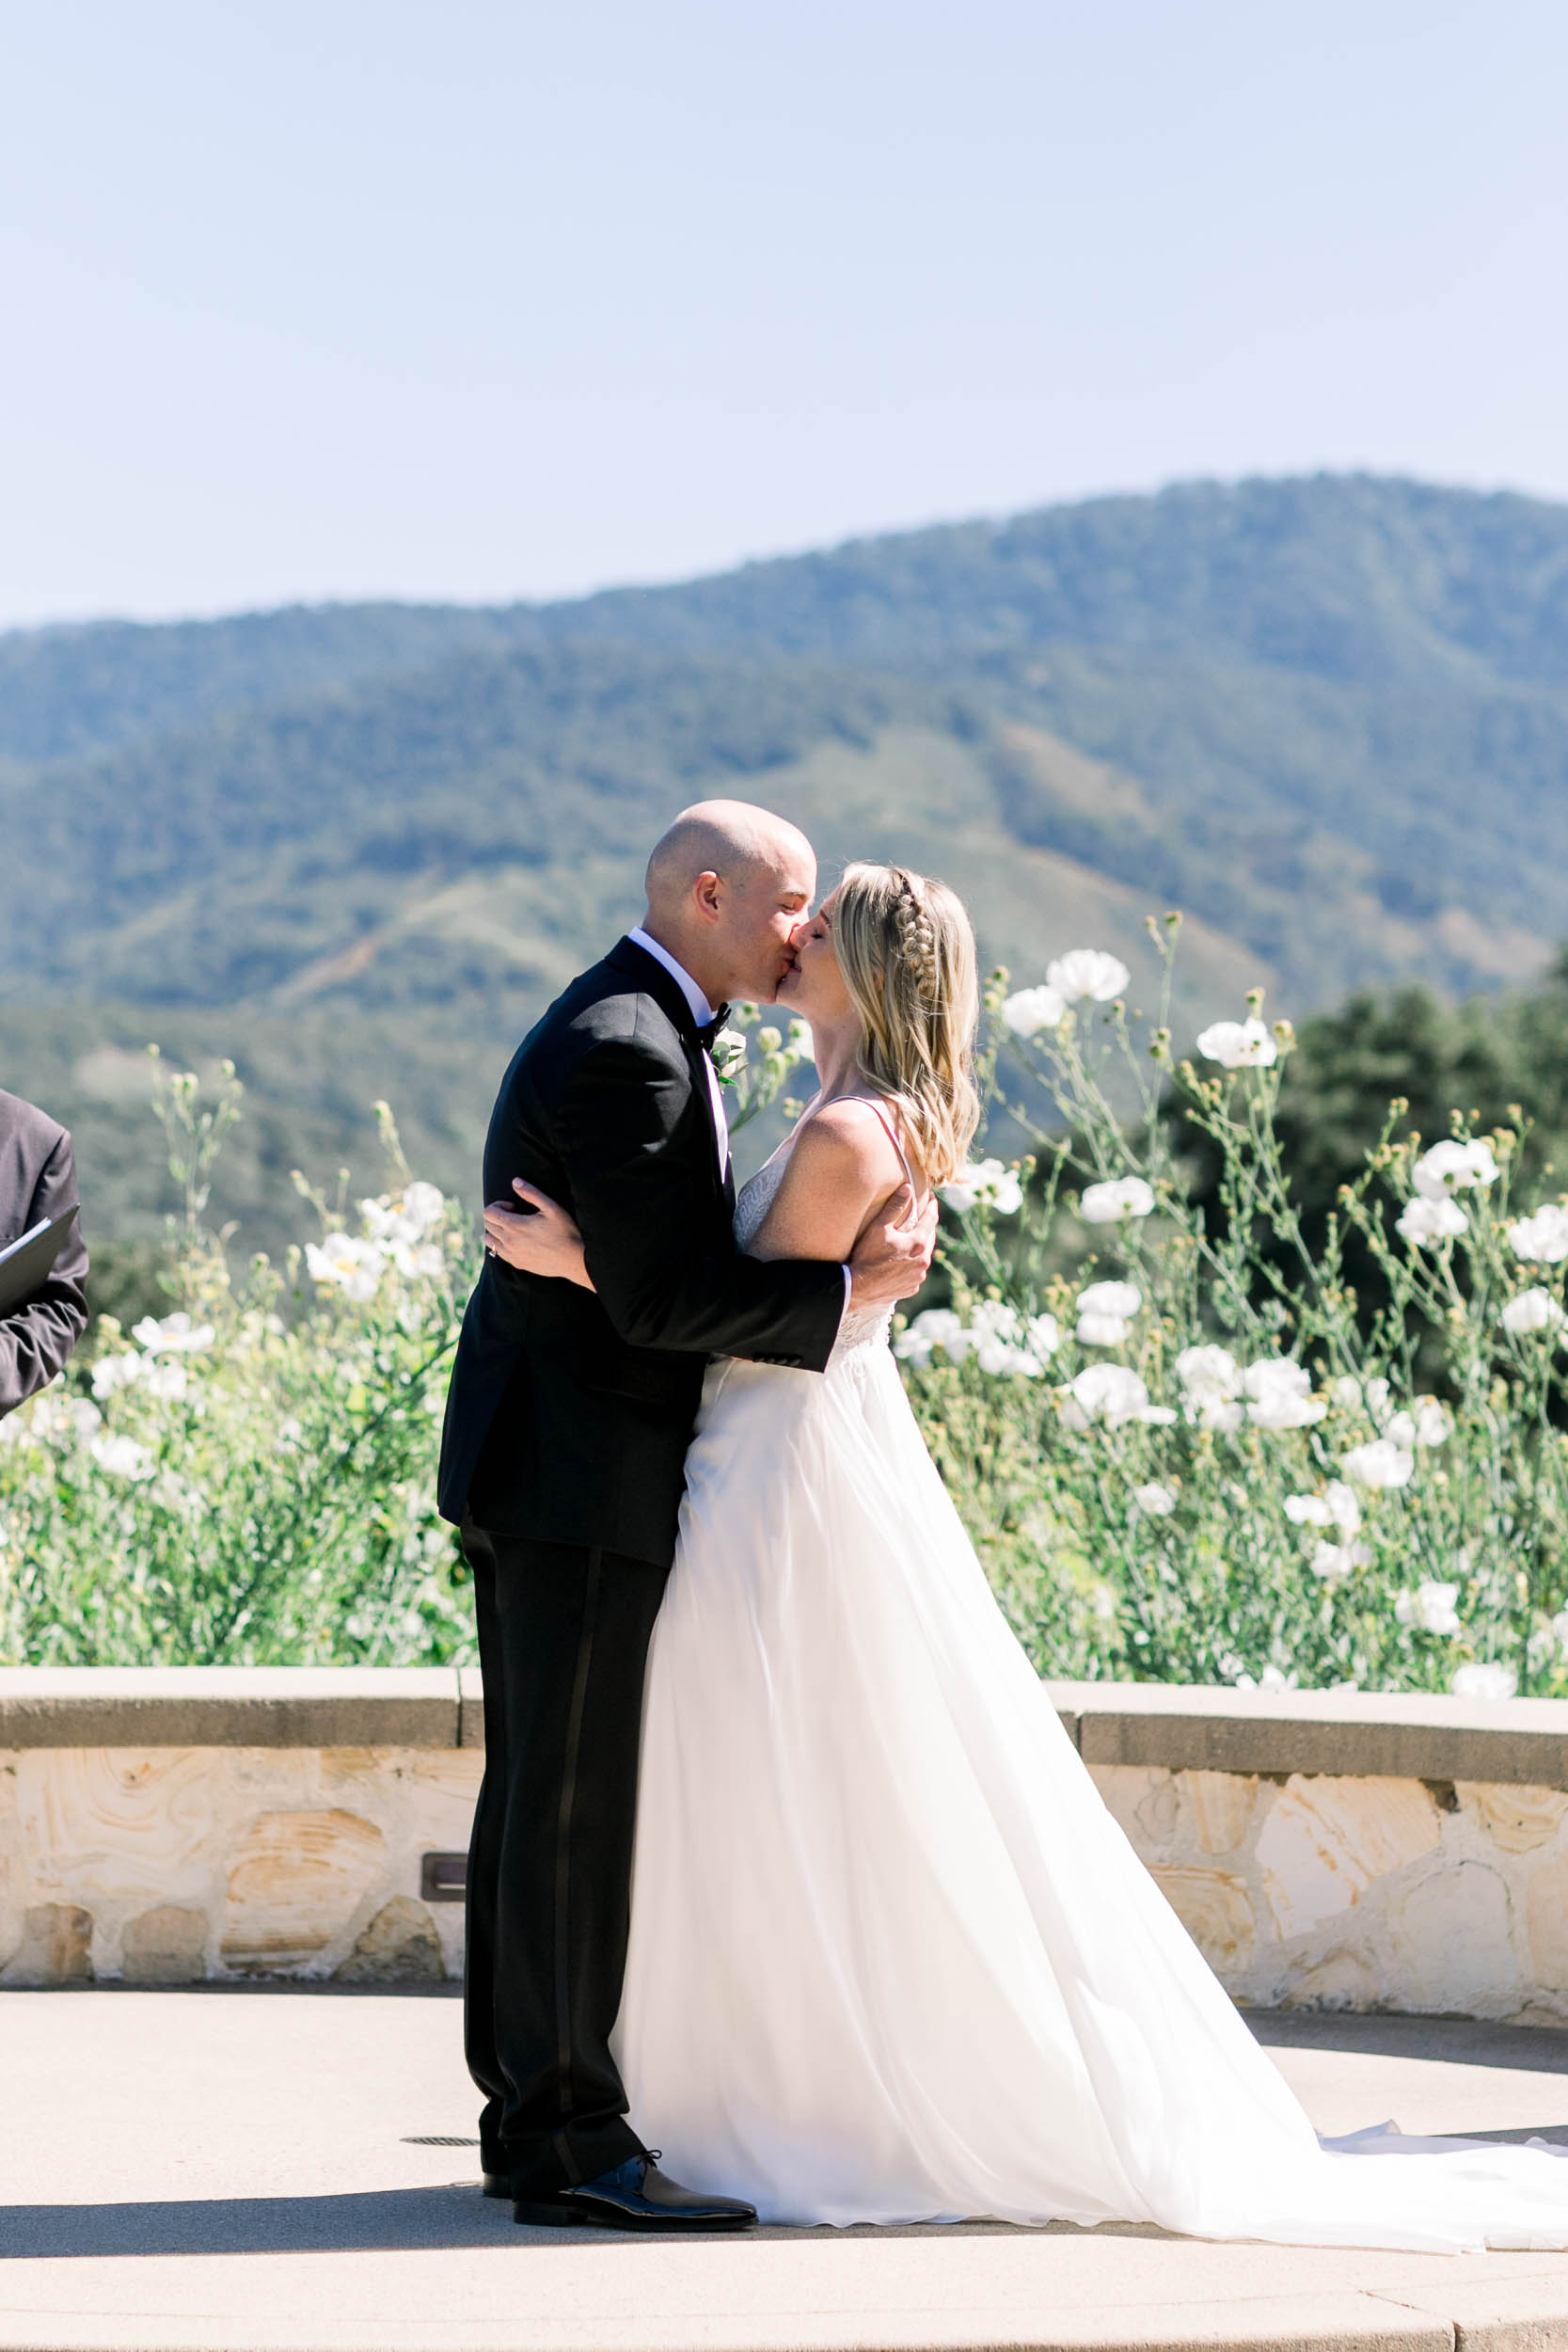 C+D_Holman Ranch Wedding_Carmel Valley_Buena Lane Photography_060619_ER319.jpg